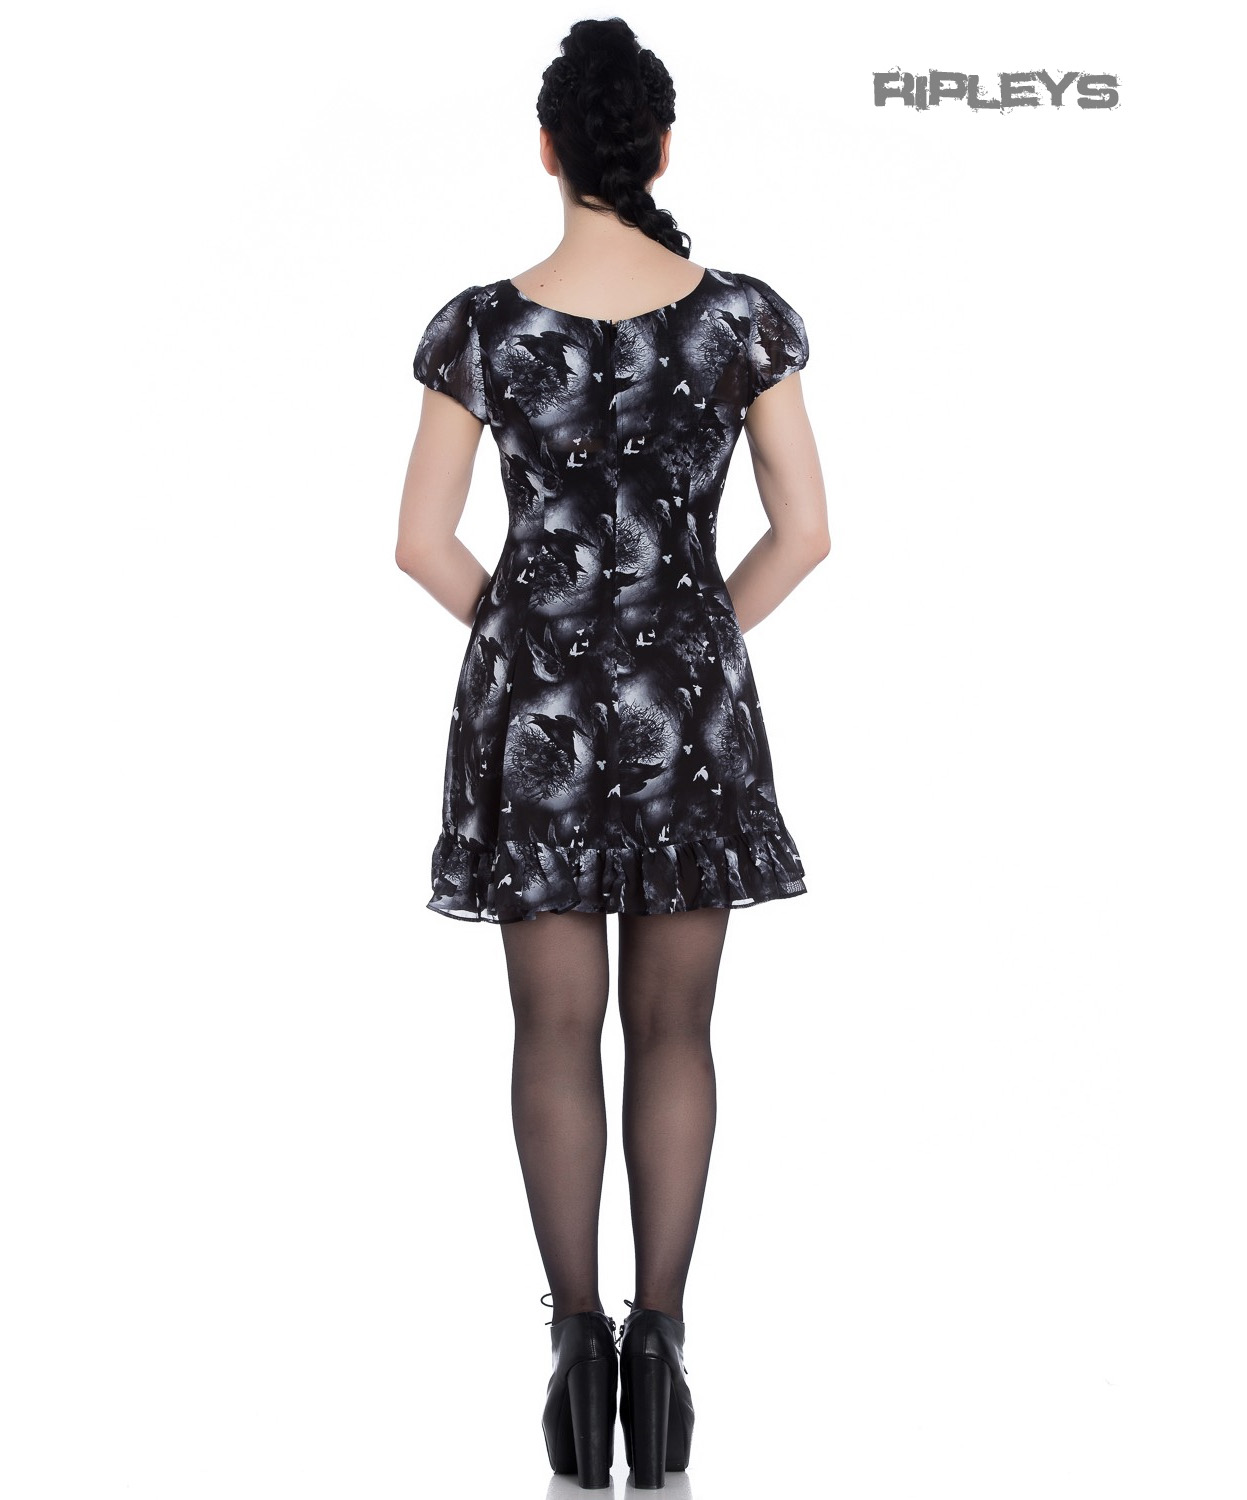 Hell-Bunny-Alchemy-Gothic-Black-Skater-Mini-Dress-ASH-Crows-Skulls-All-Sizes thumbnail 24